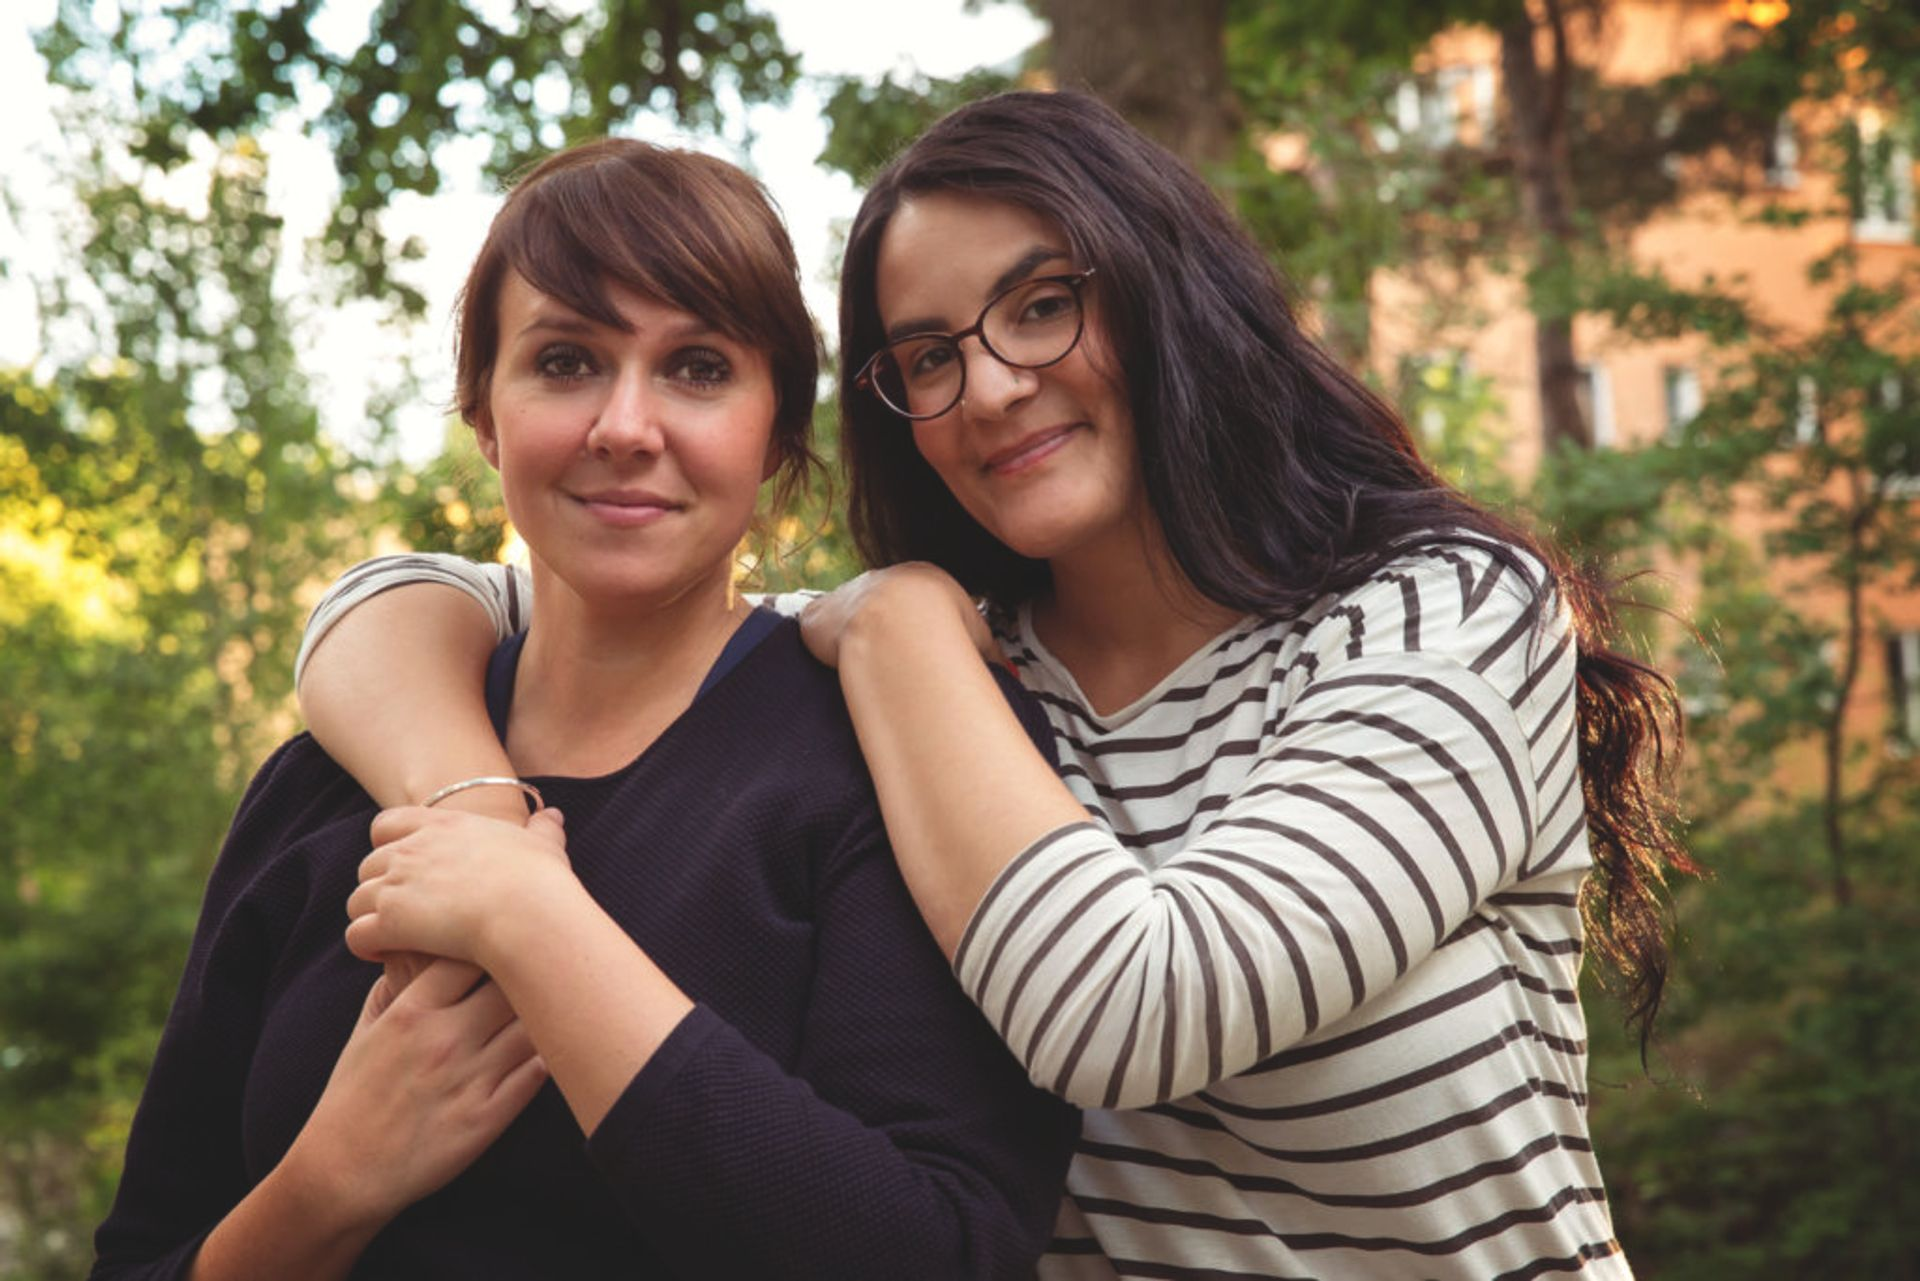 A couple stands outisde together. One woman has her arms around her girlfriend's shoulders.